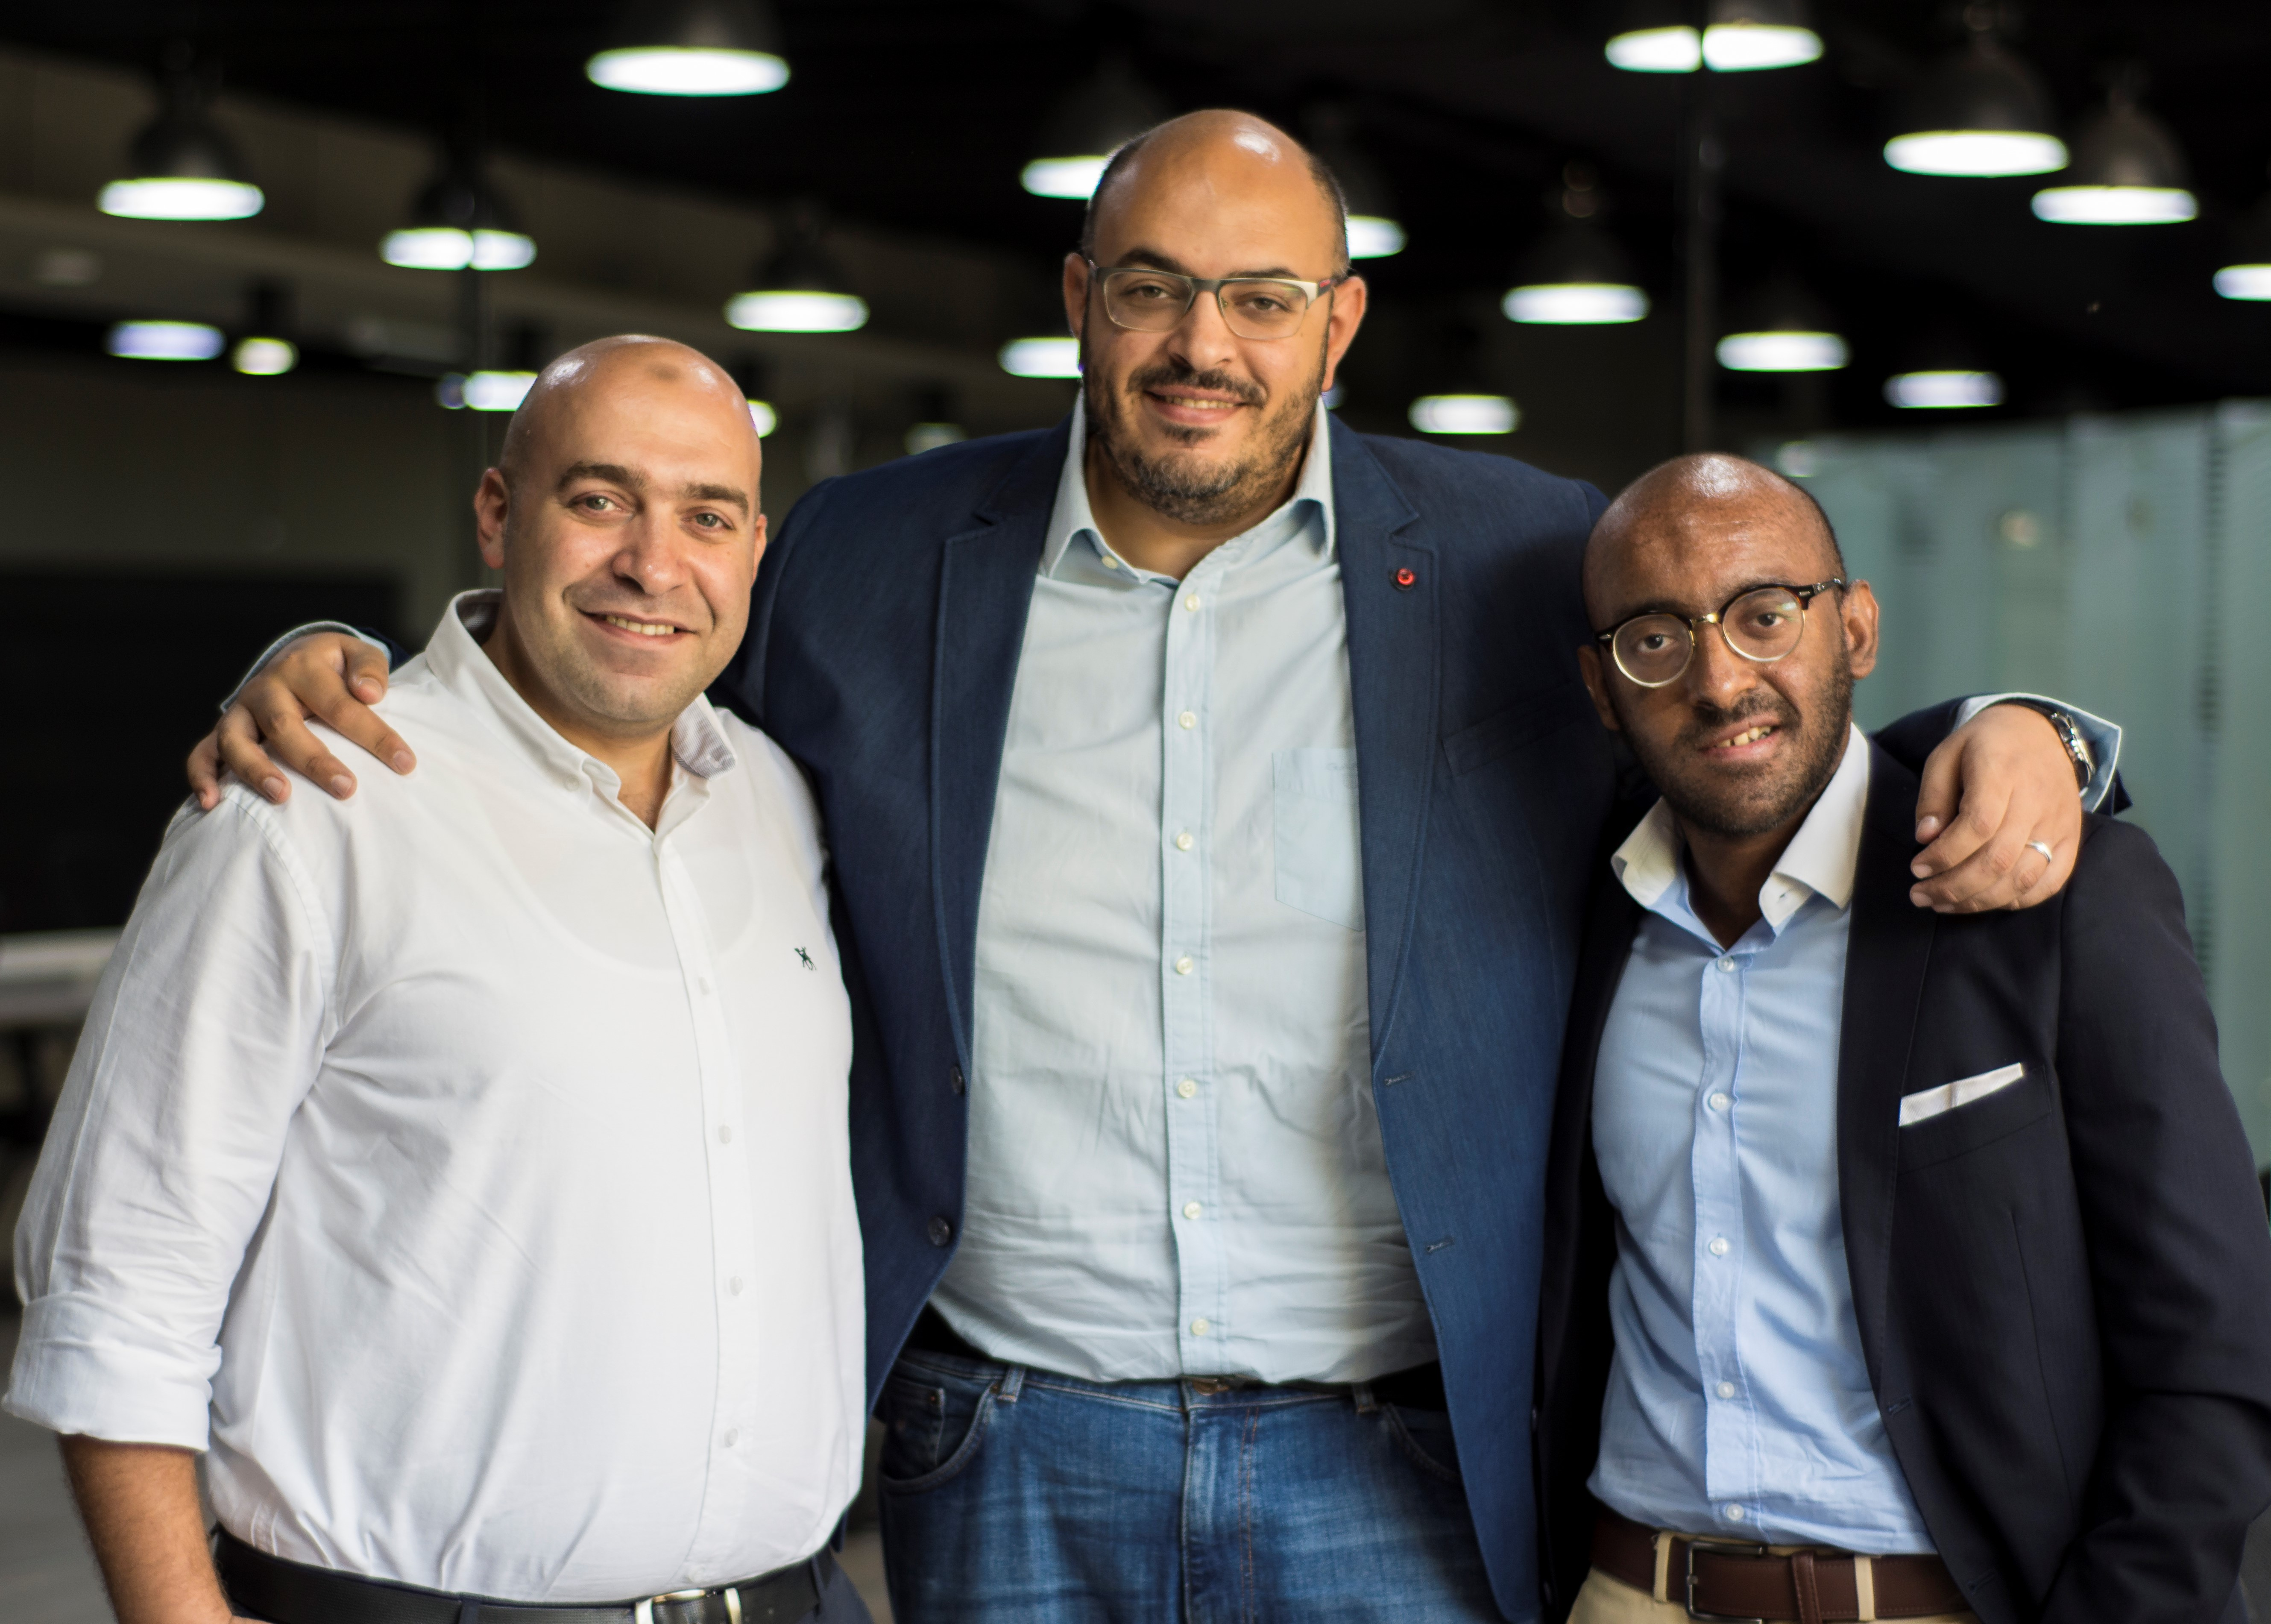 MAYDAY: Disrupting roadside assistance in Egypt